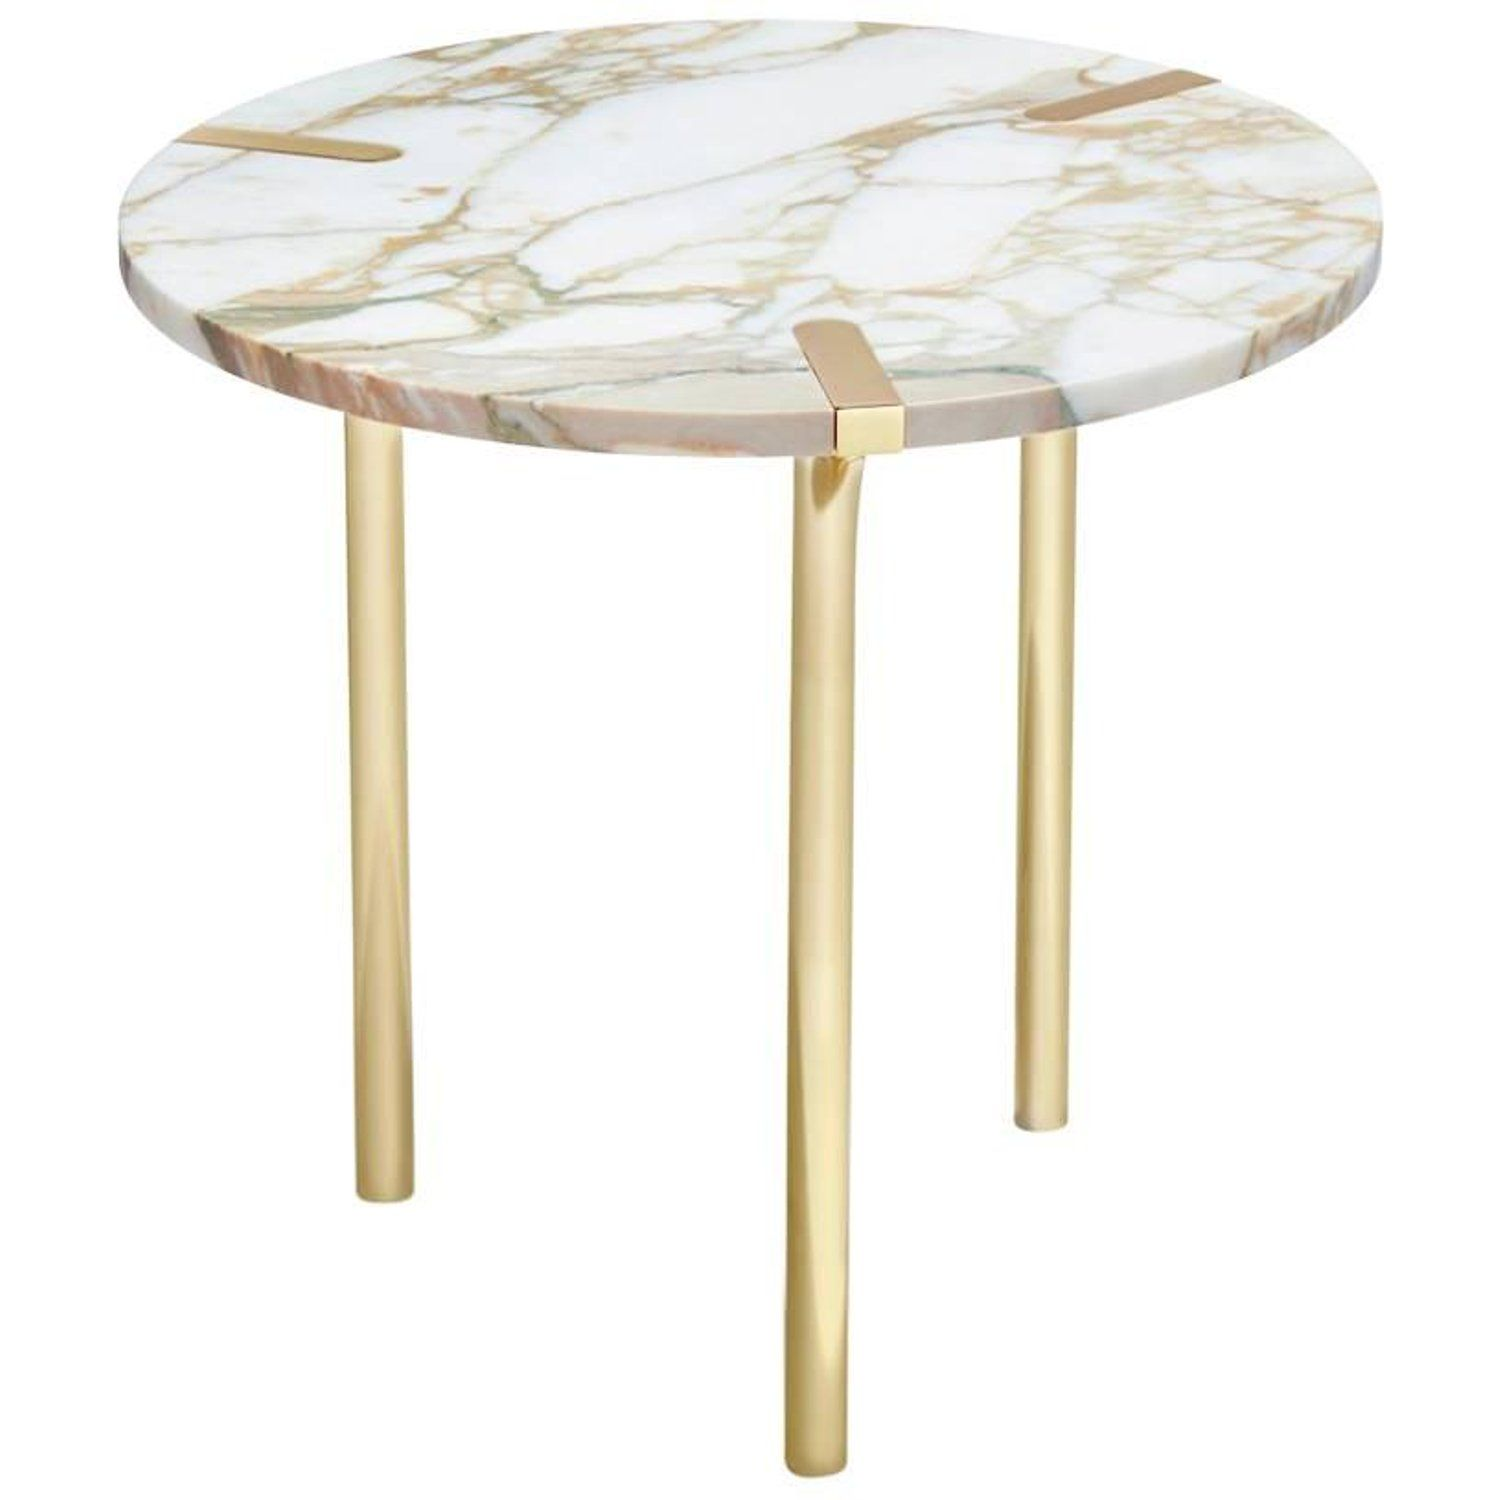 Sereno End Table In Calacatta Marble And Polished Gold By Anna New